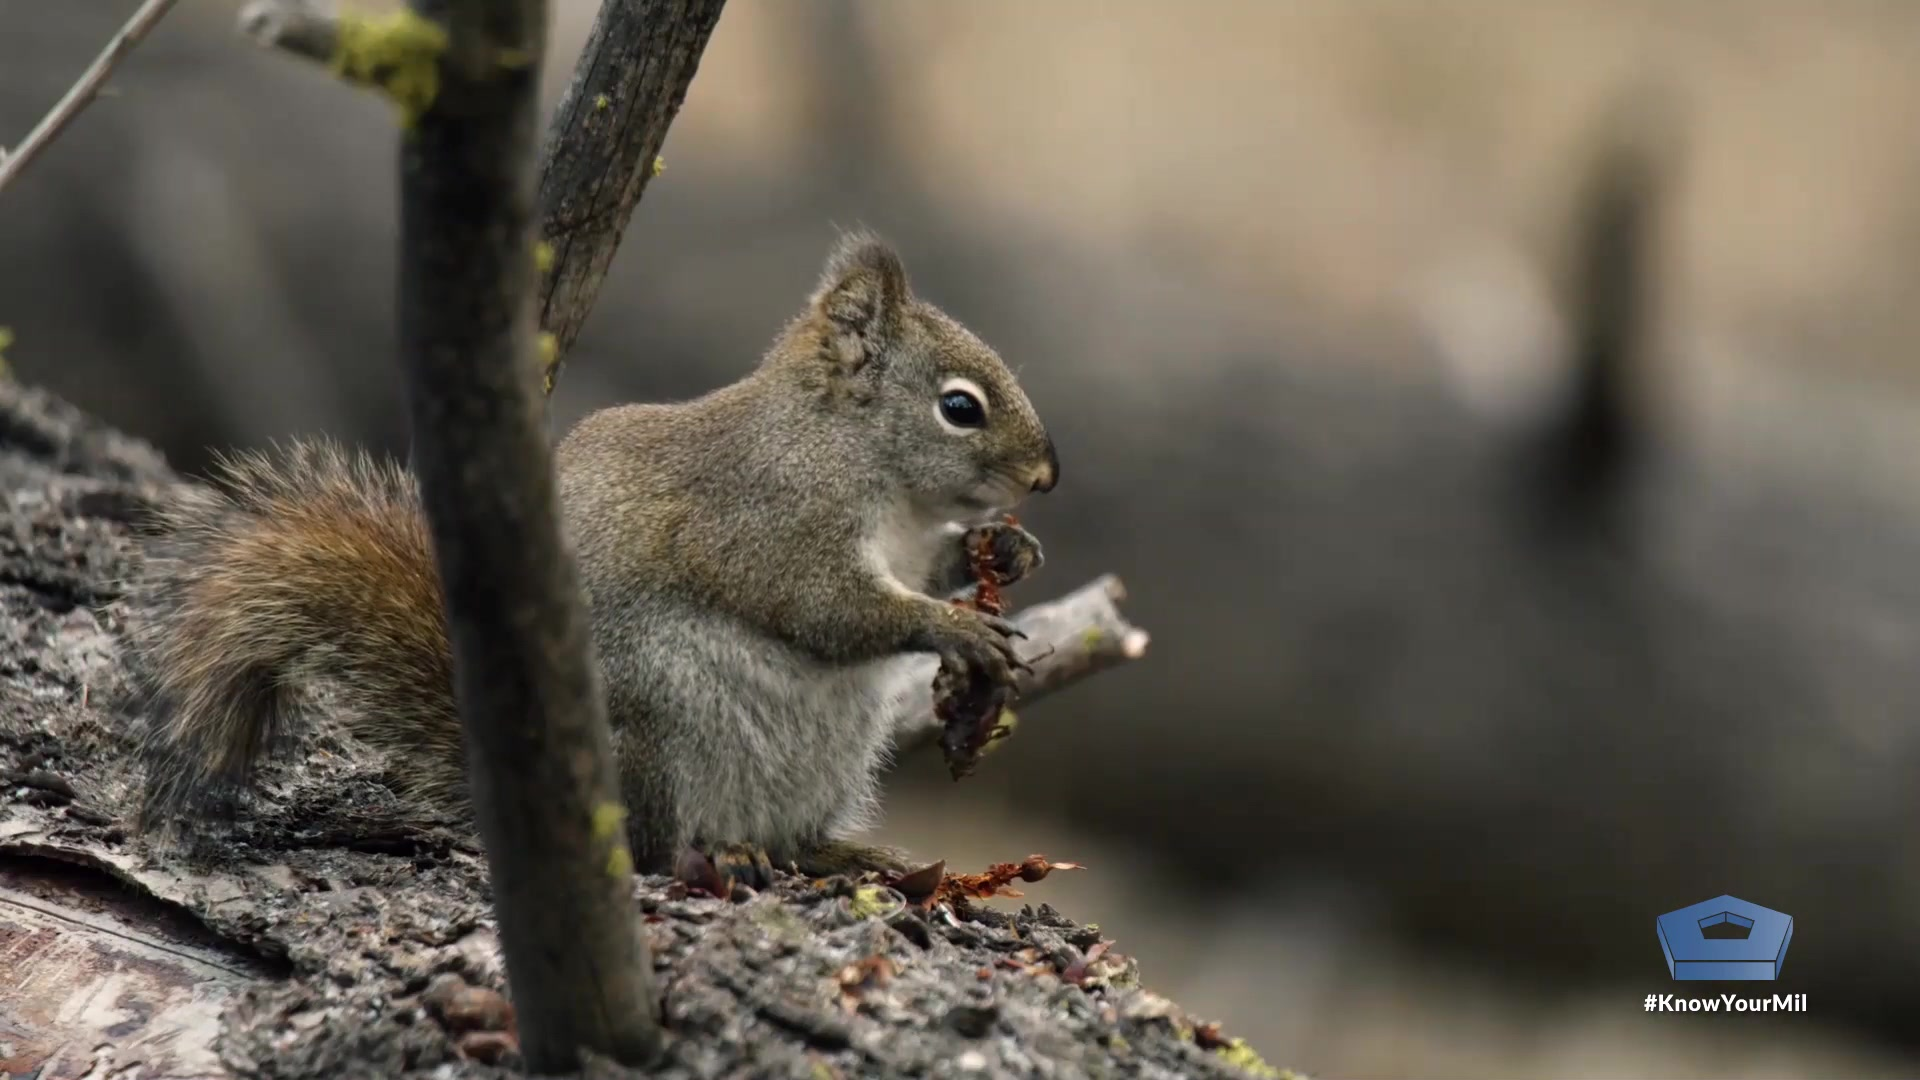 A squirrel crouches by a tree.